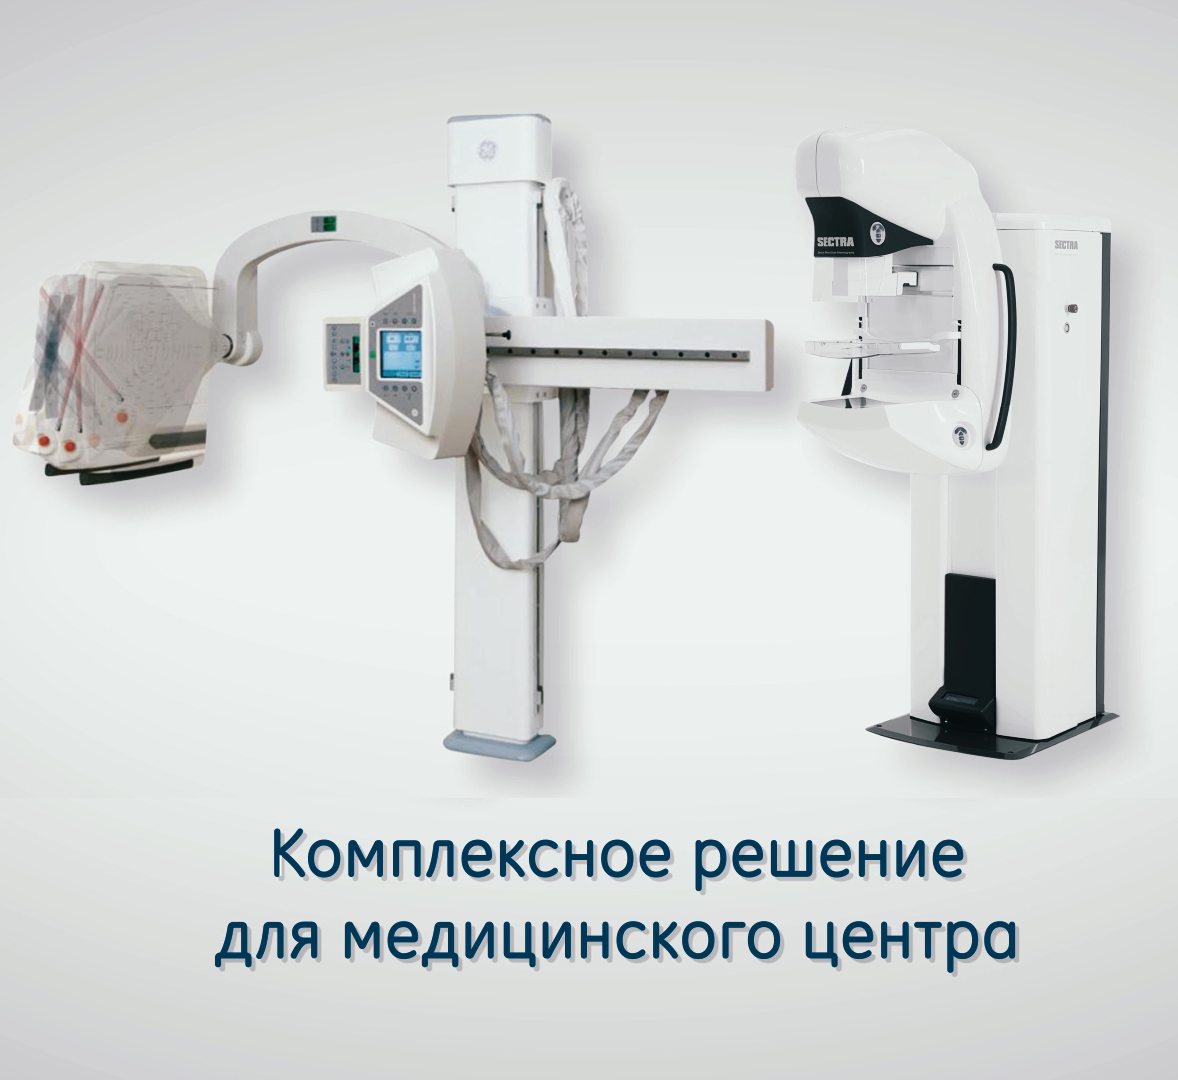 Philips Sectra MicroDose и GE Definium 5000